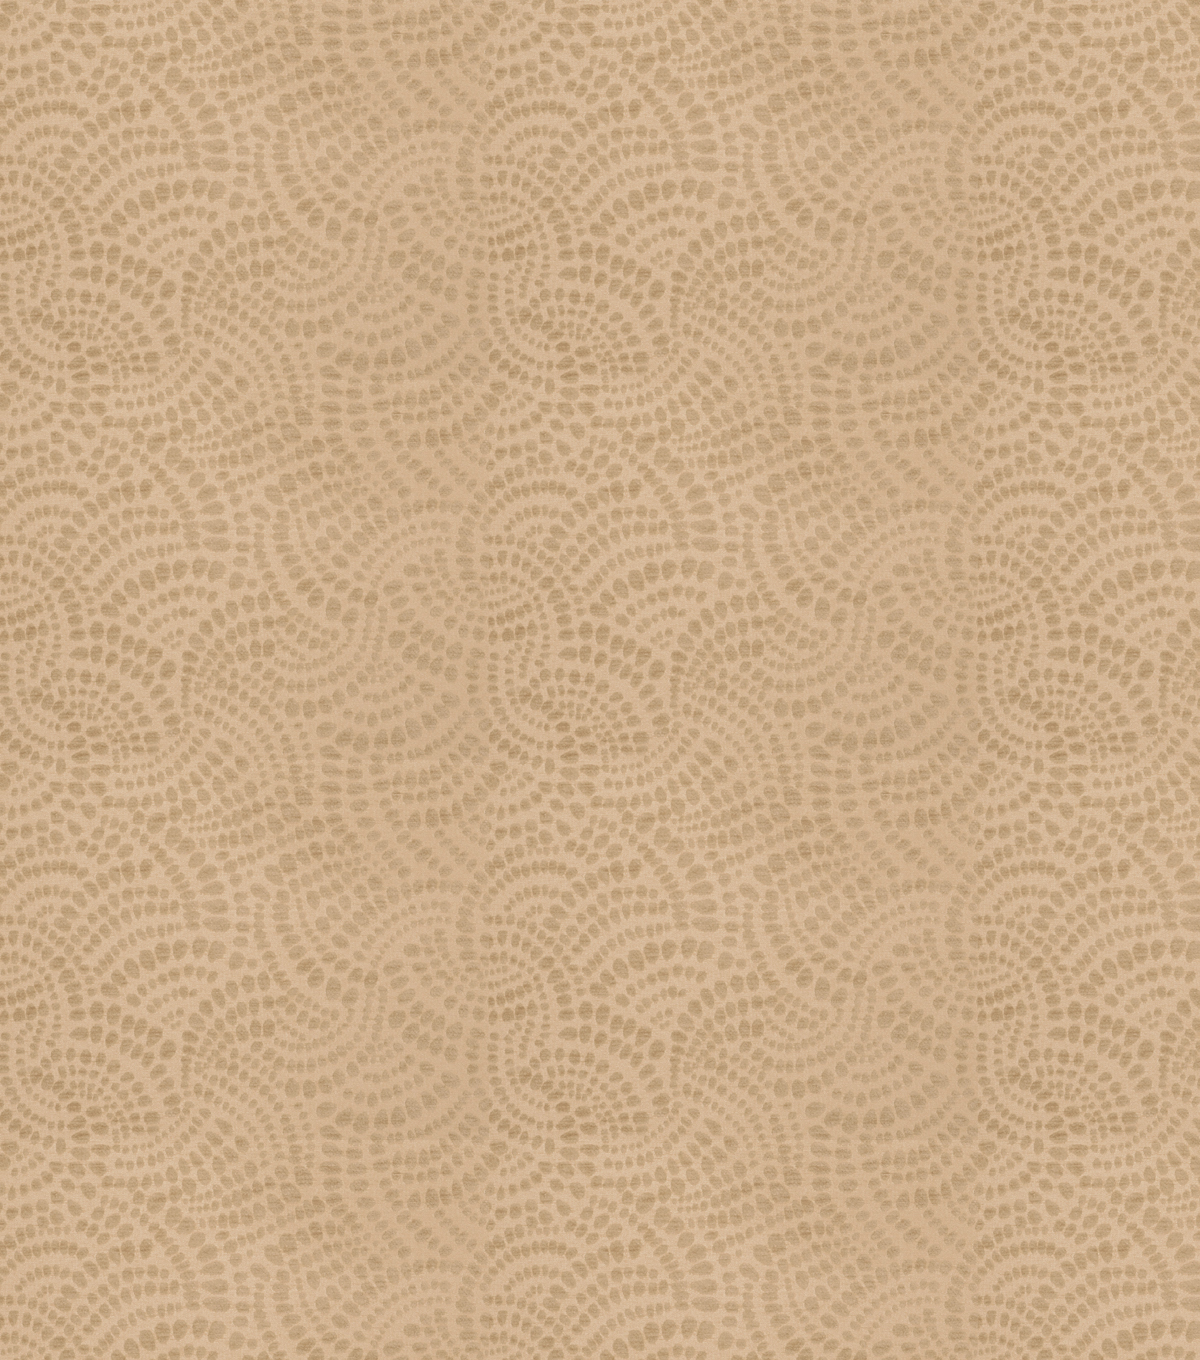 Eaton Square Multi-Purpose Decor Fabric 57\u0022-Opus/Pebble